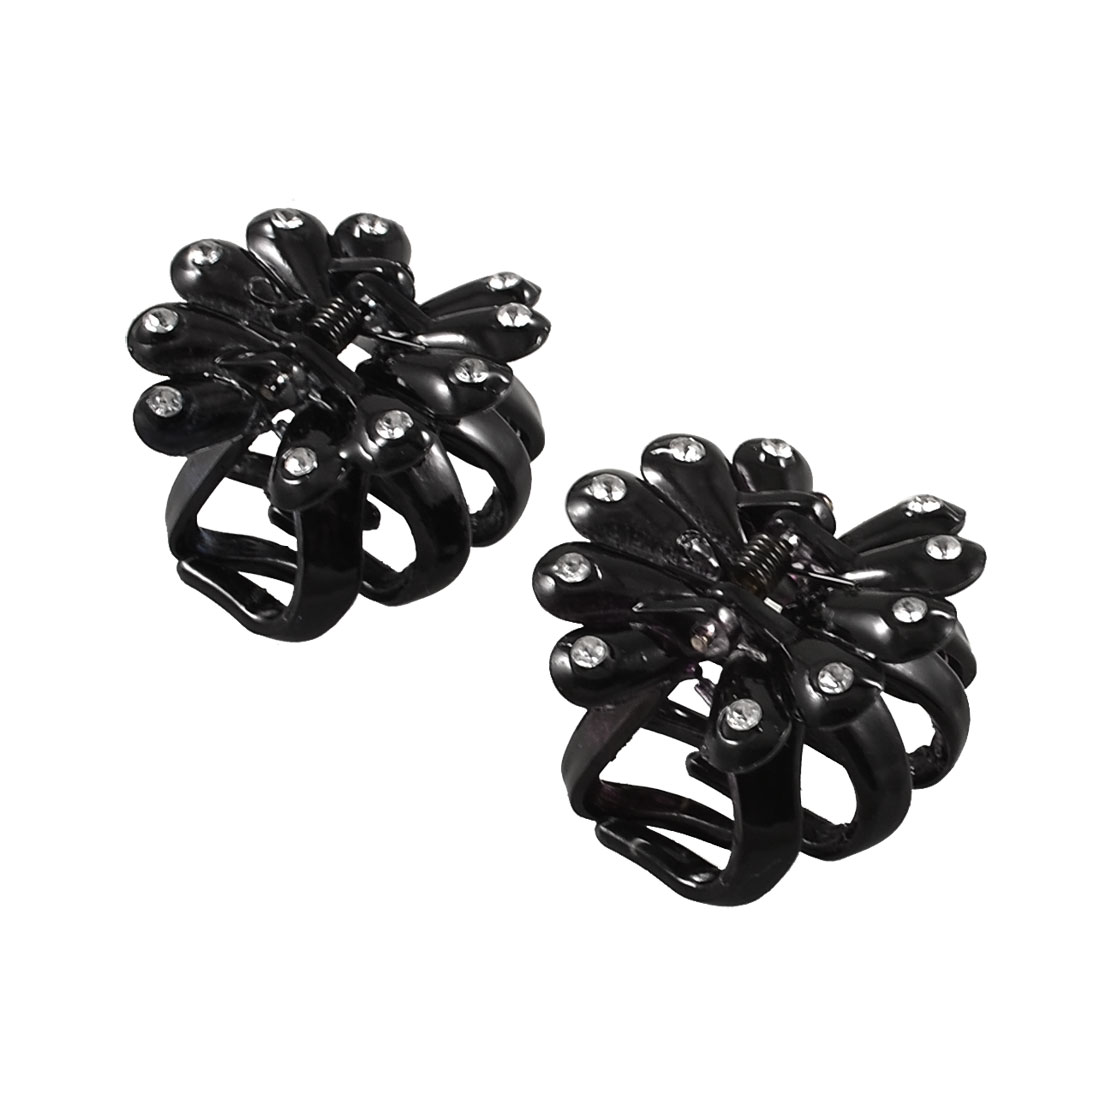 Woman Head Decor Rhinestones Inlaid Bowknot Design Black Plastic Hair Claw Clip 2 Pcs